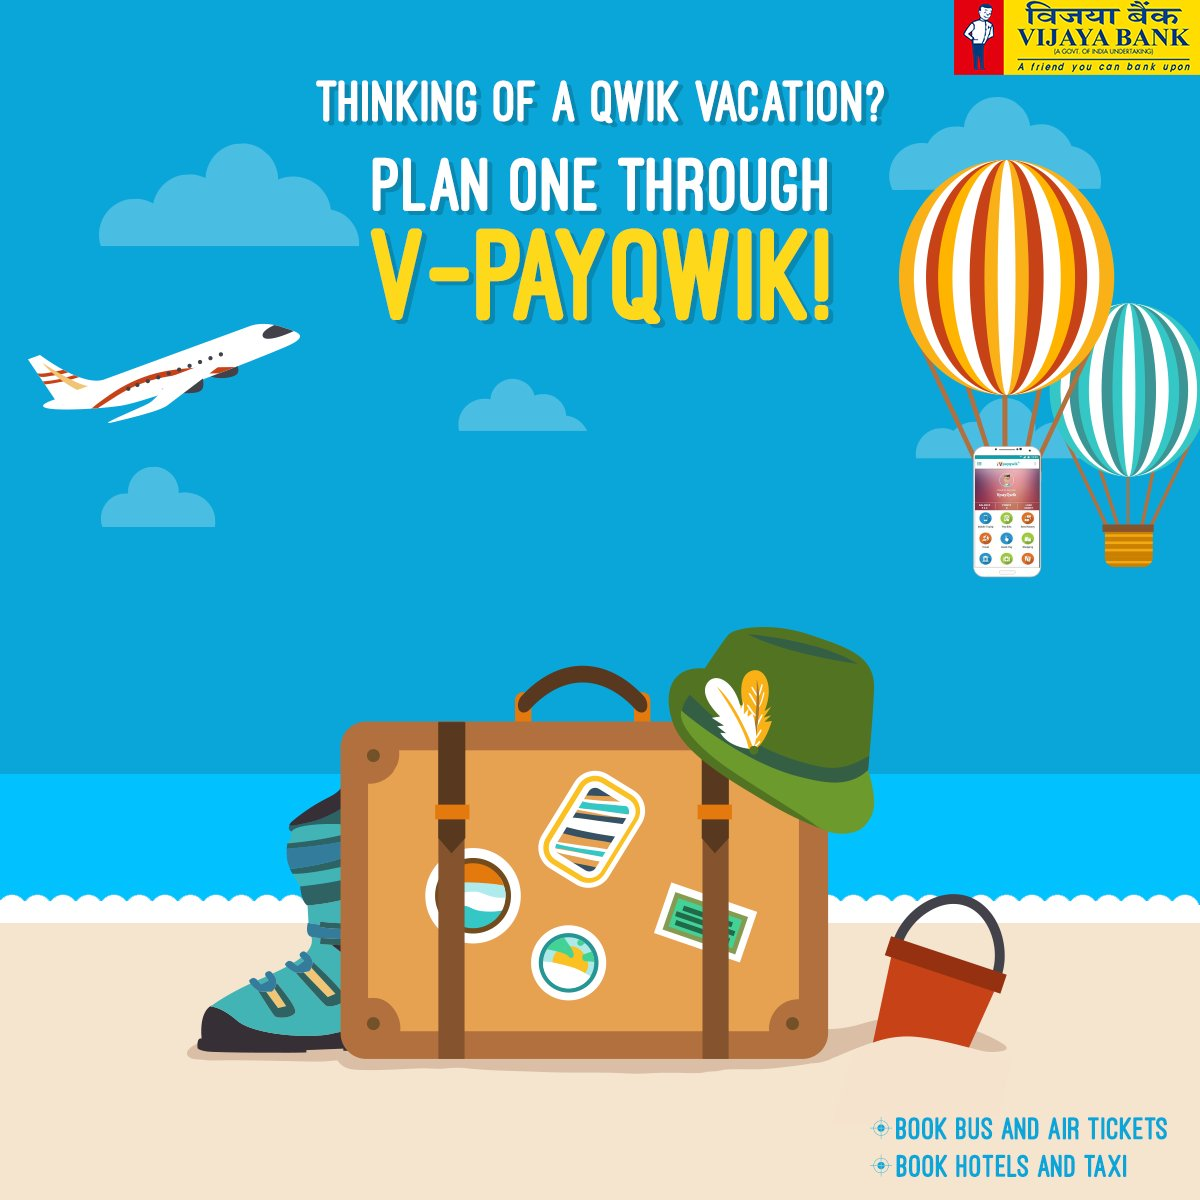 Plan your entire vacation through V-Payqwik! Get the app now: iOS  http:// bit.ly/VPayQwik  &nbsp;   Android  http:// bit.ly/VPAYQWIK  &nbsp;   #digitalwallet <br>http://pic.twitter.com/ImjUGyccOf